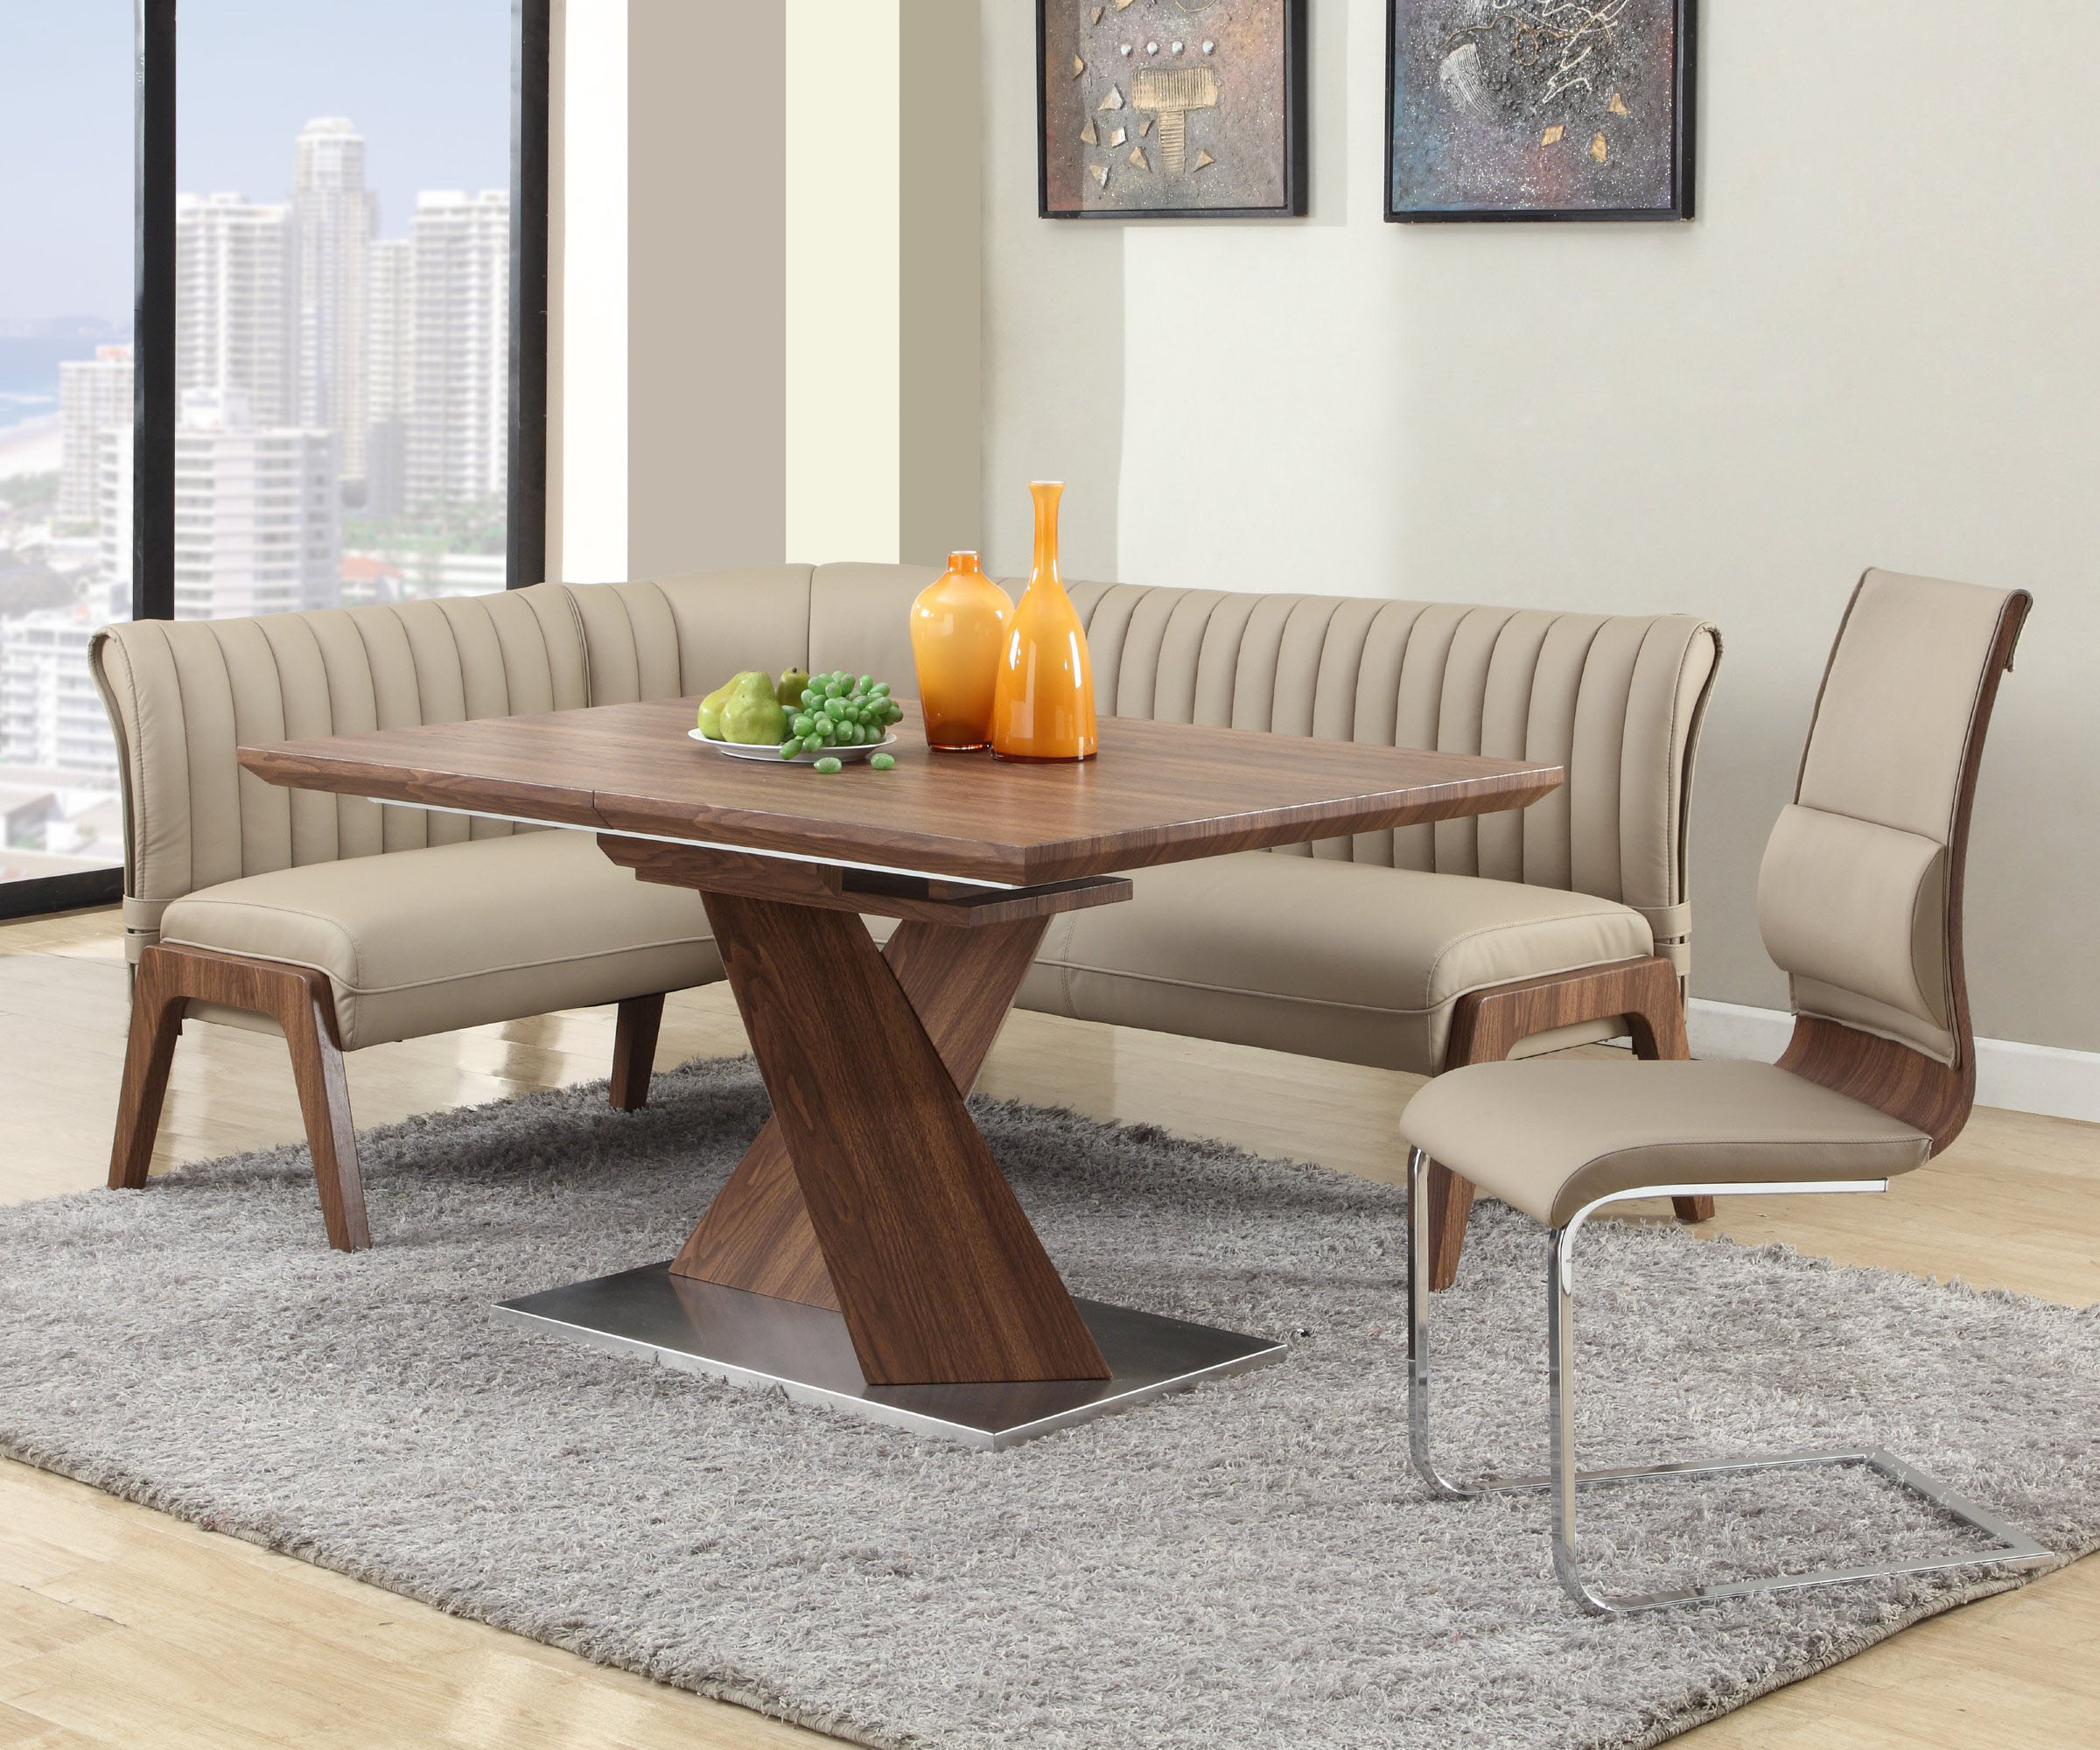 Extendable in Wood Leather Furniture Dining Room Sets with  : walnut dining table set with nook chbethany from www.primeclassicdesign.com size 2400 x 2000 jpeg 755kB